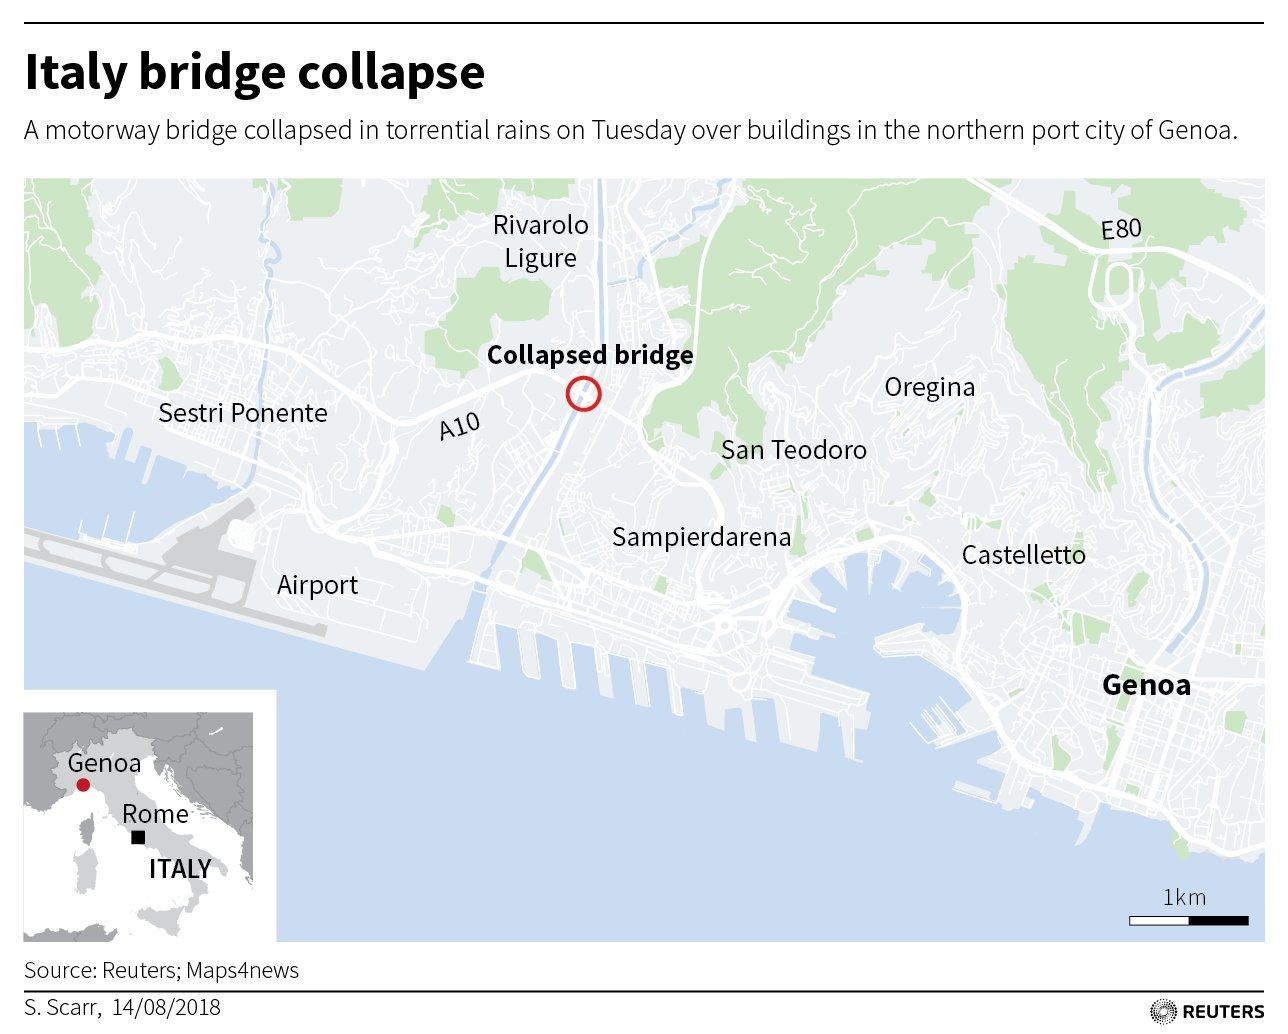 Motorway bridge in #Genoa, Italy collapses in heavy rains, killing at least 35 https://t.co/MdClZKyMbB https://t.co/J1RZF5ICTA